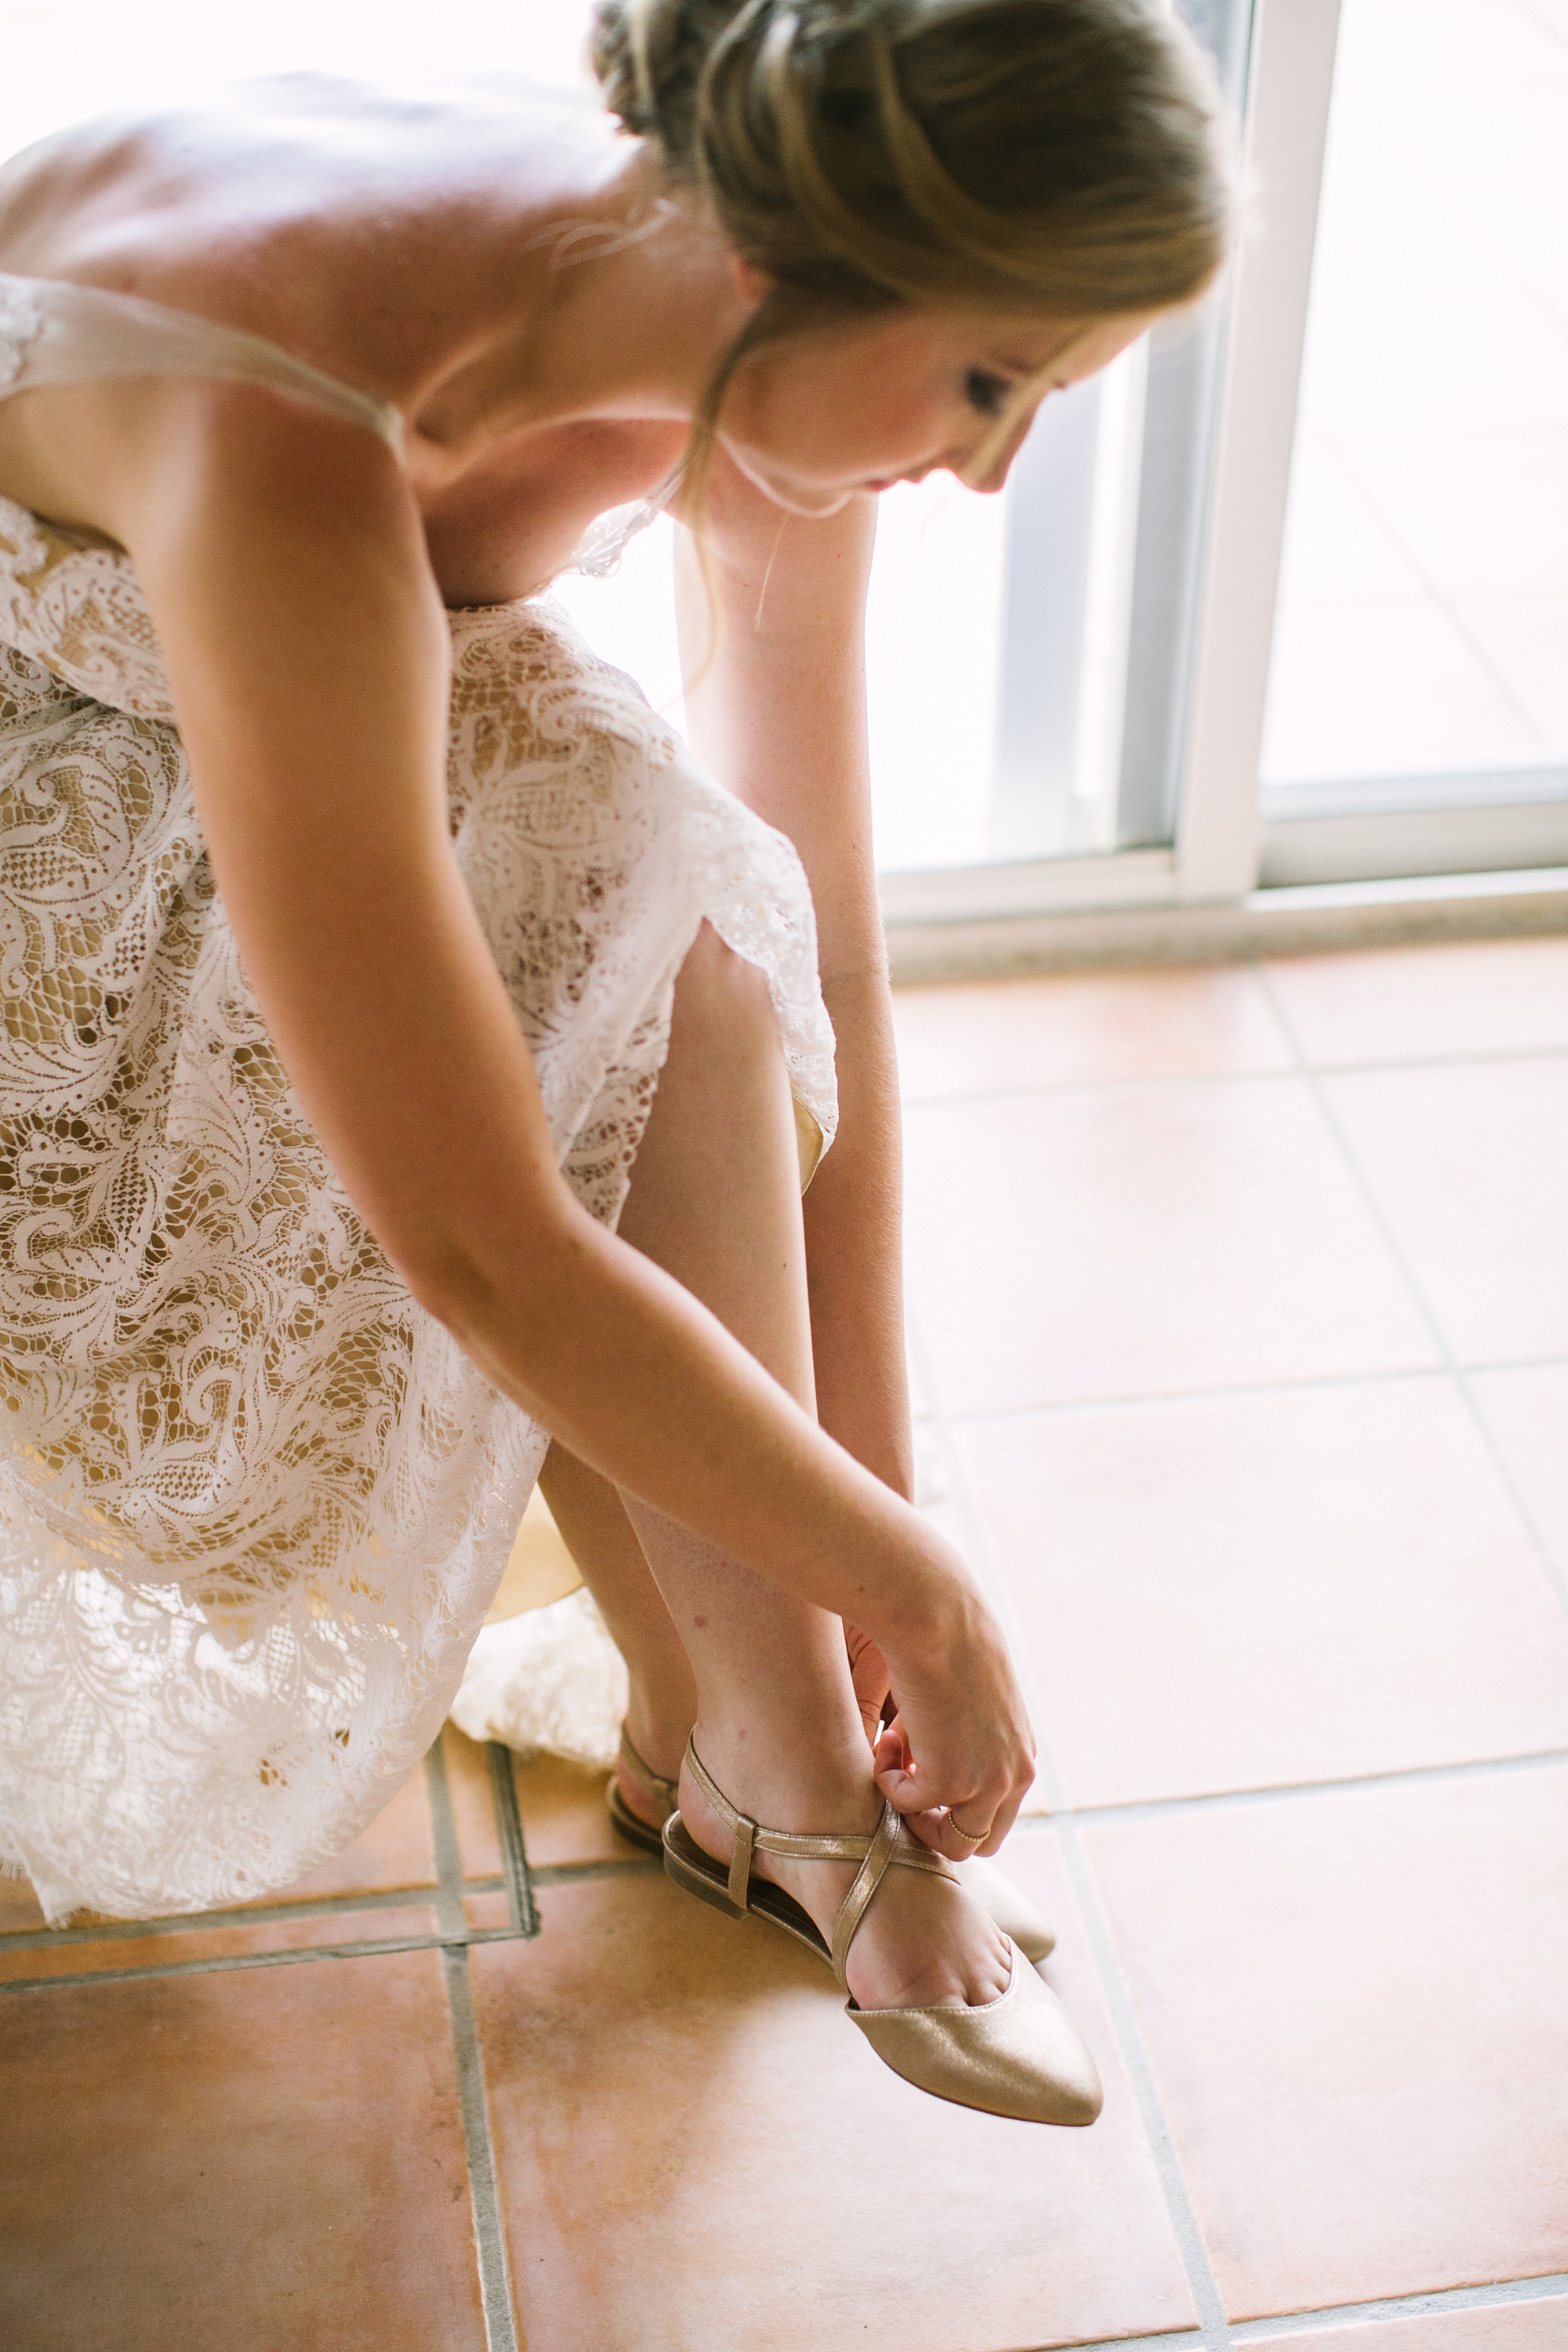 St John Virgin Islands Elopement + Wedding Photographer_Savanah Loftus_0012.jpg